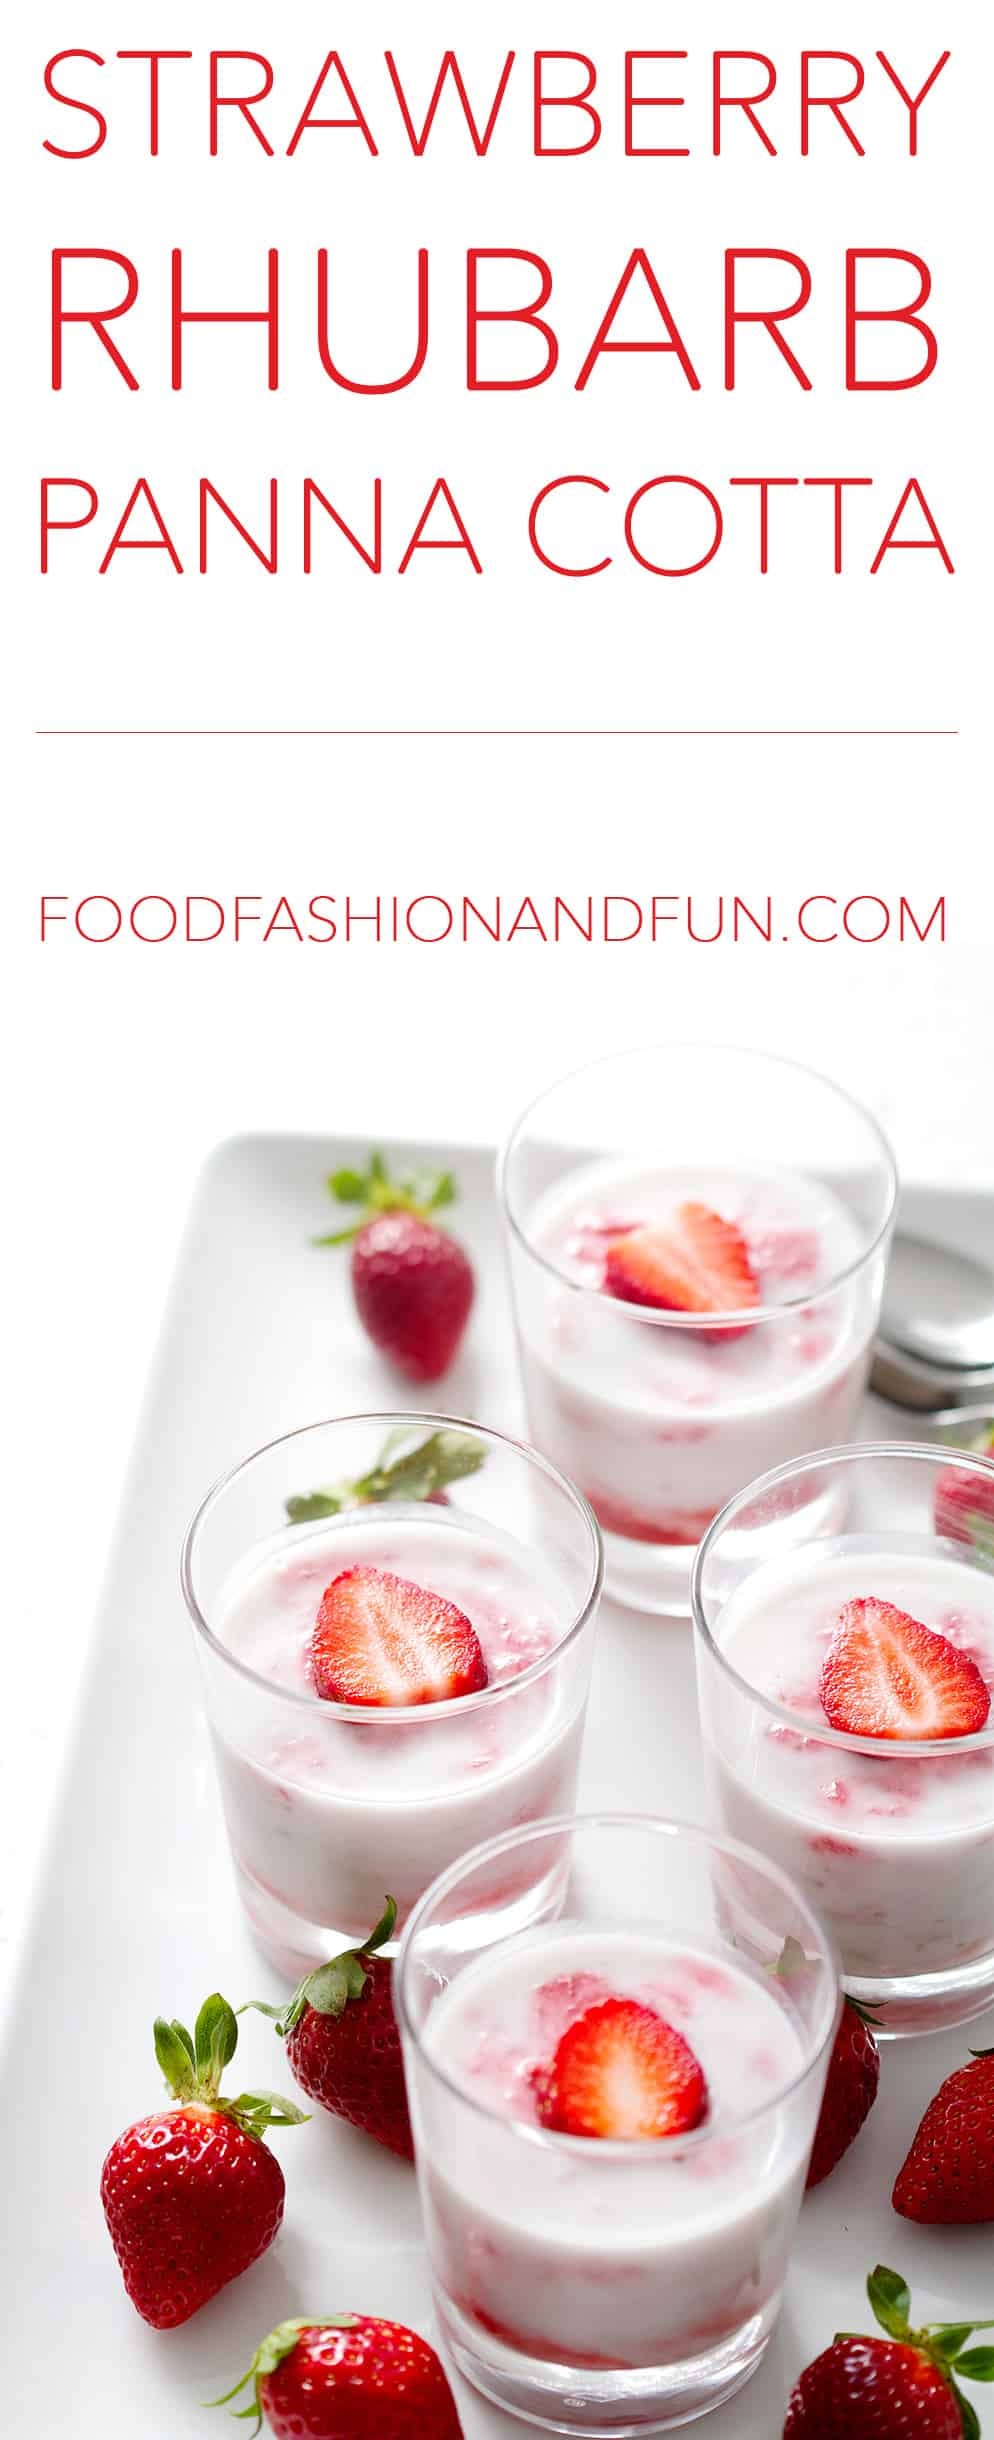 Strawberry Rhubarb Panna Cotta